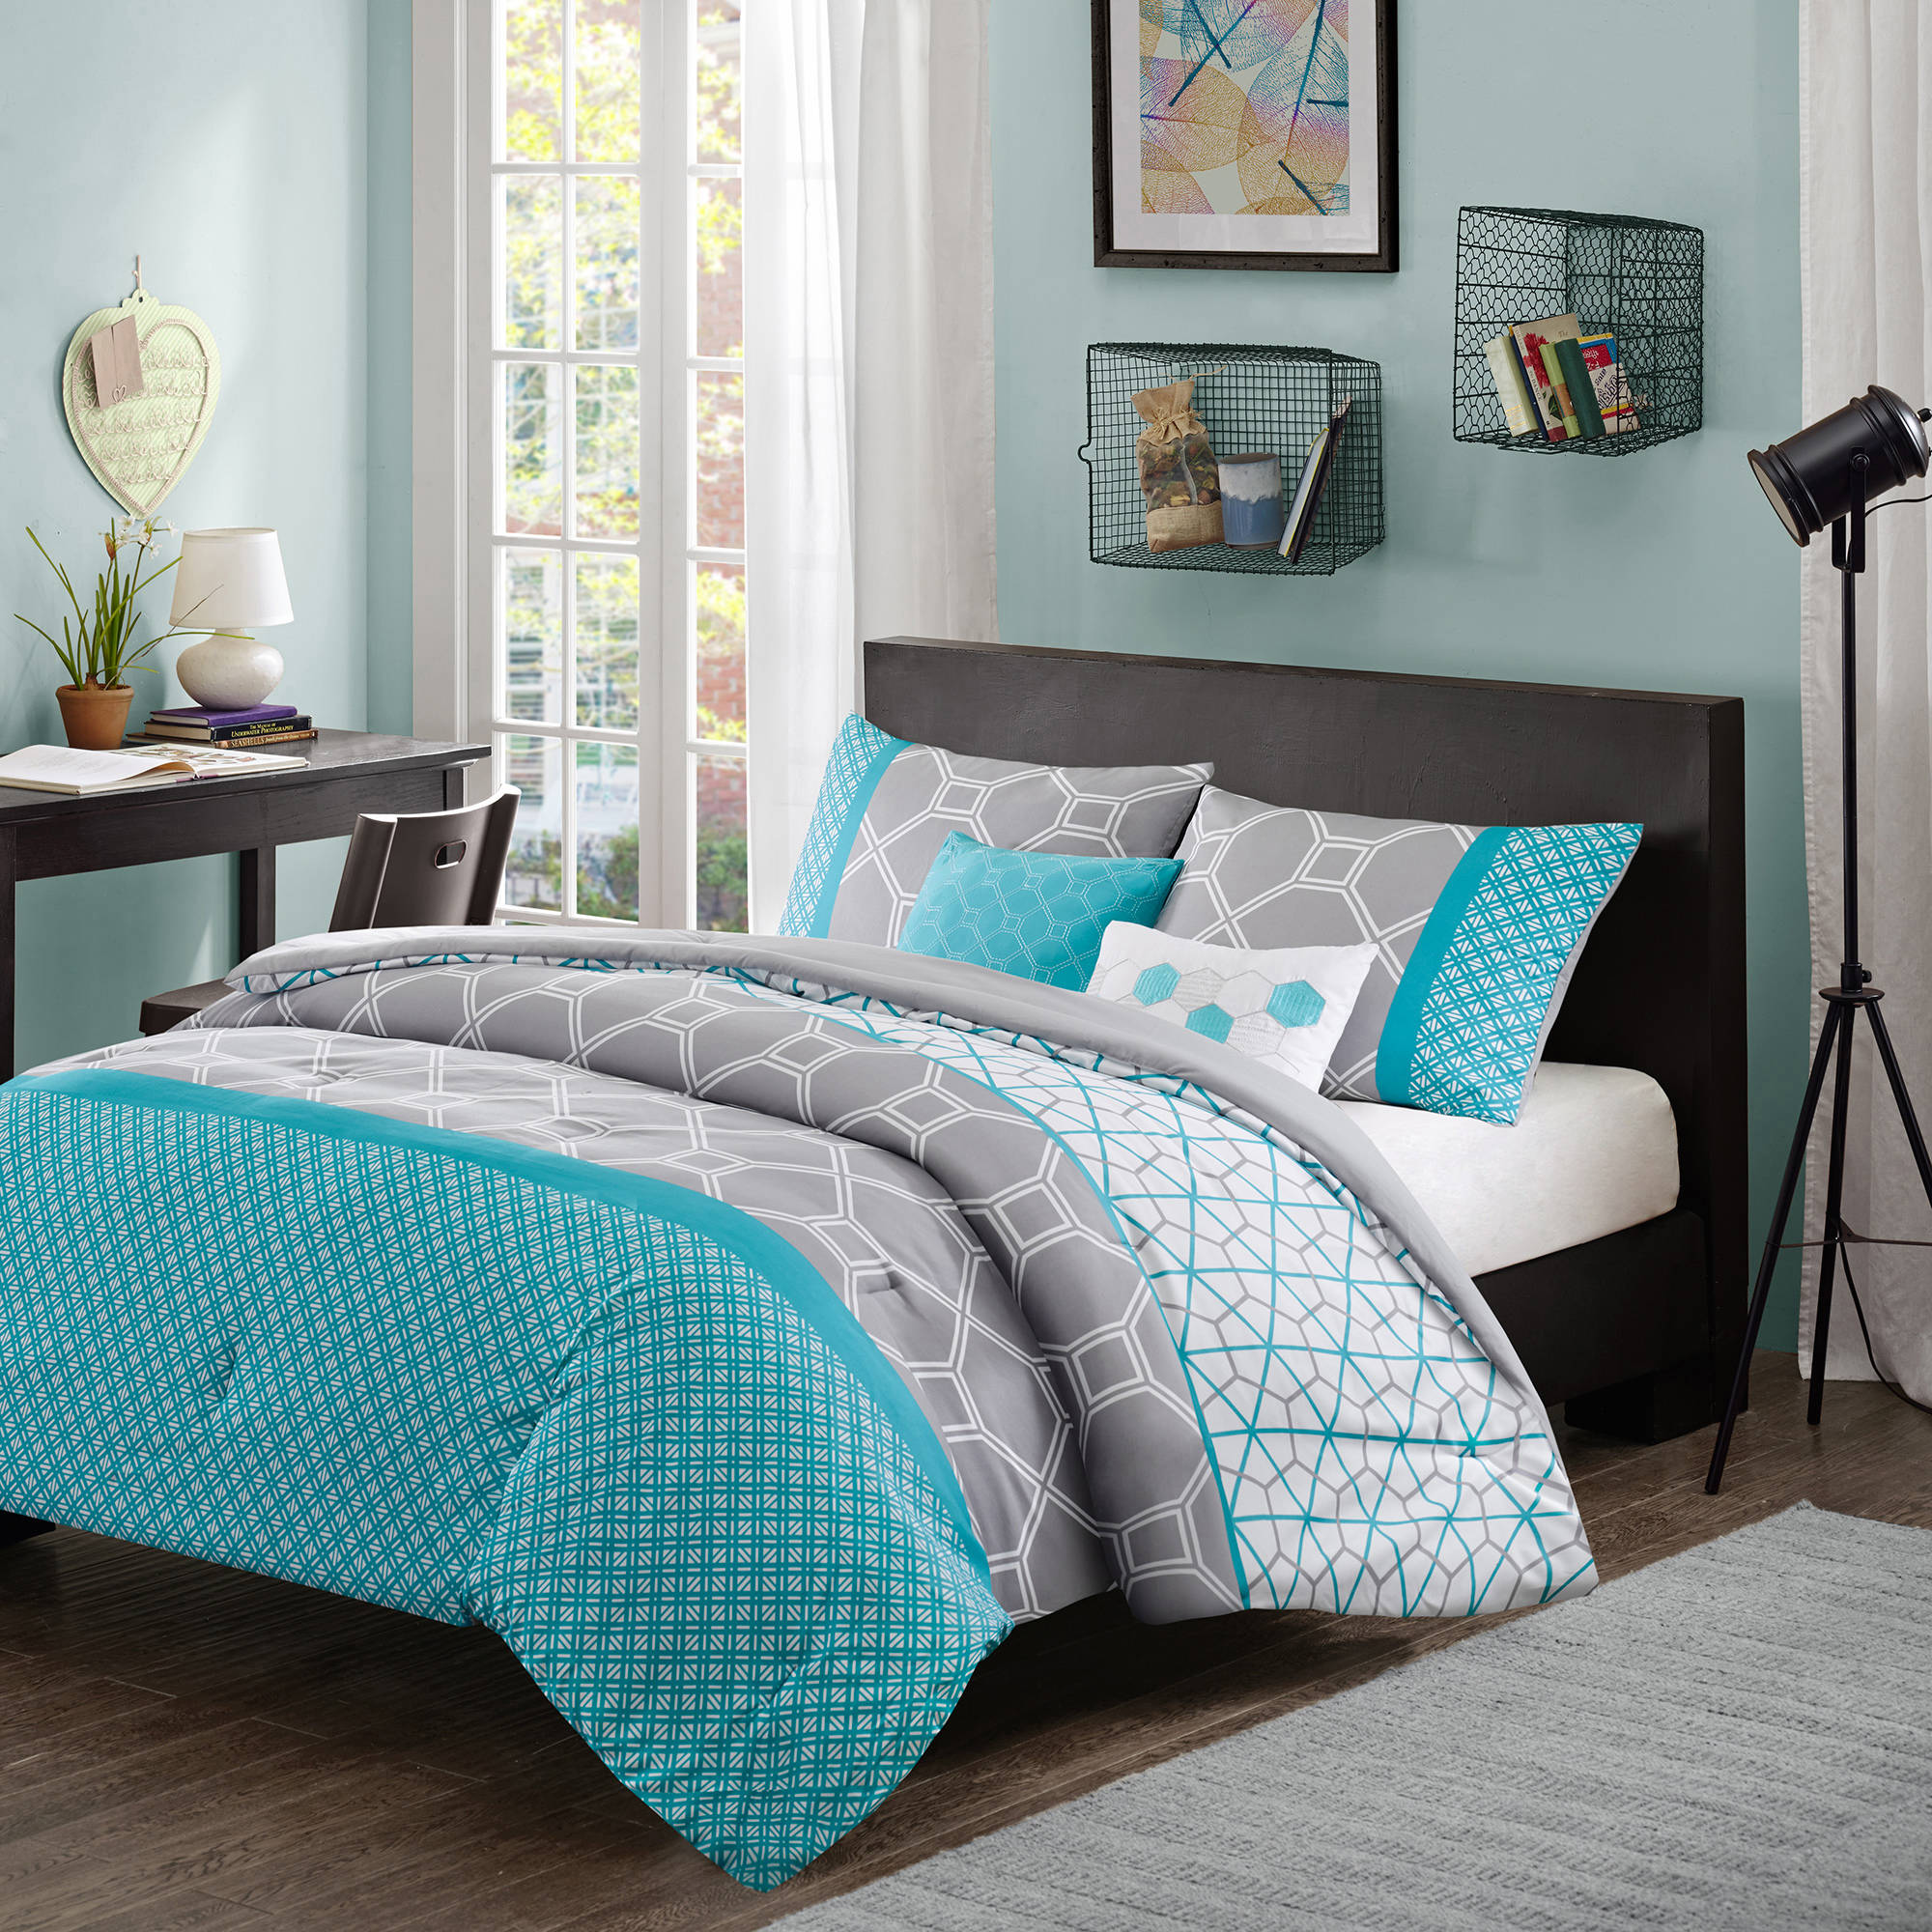 bedroom bedding sets comforter bedroom 5 bedding aqua blue grey set 10283